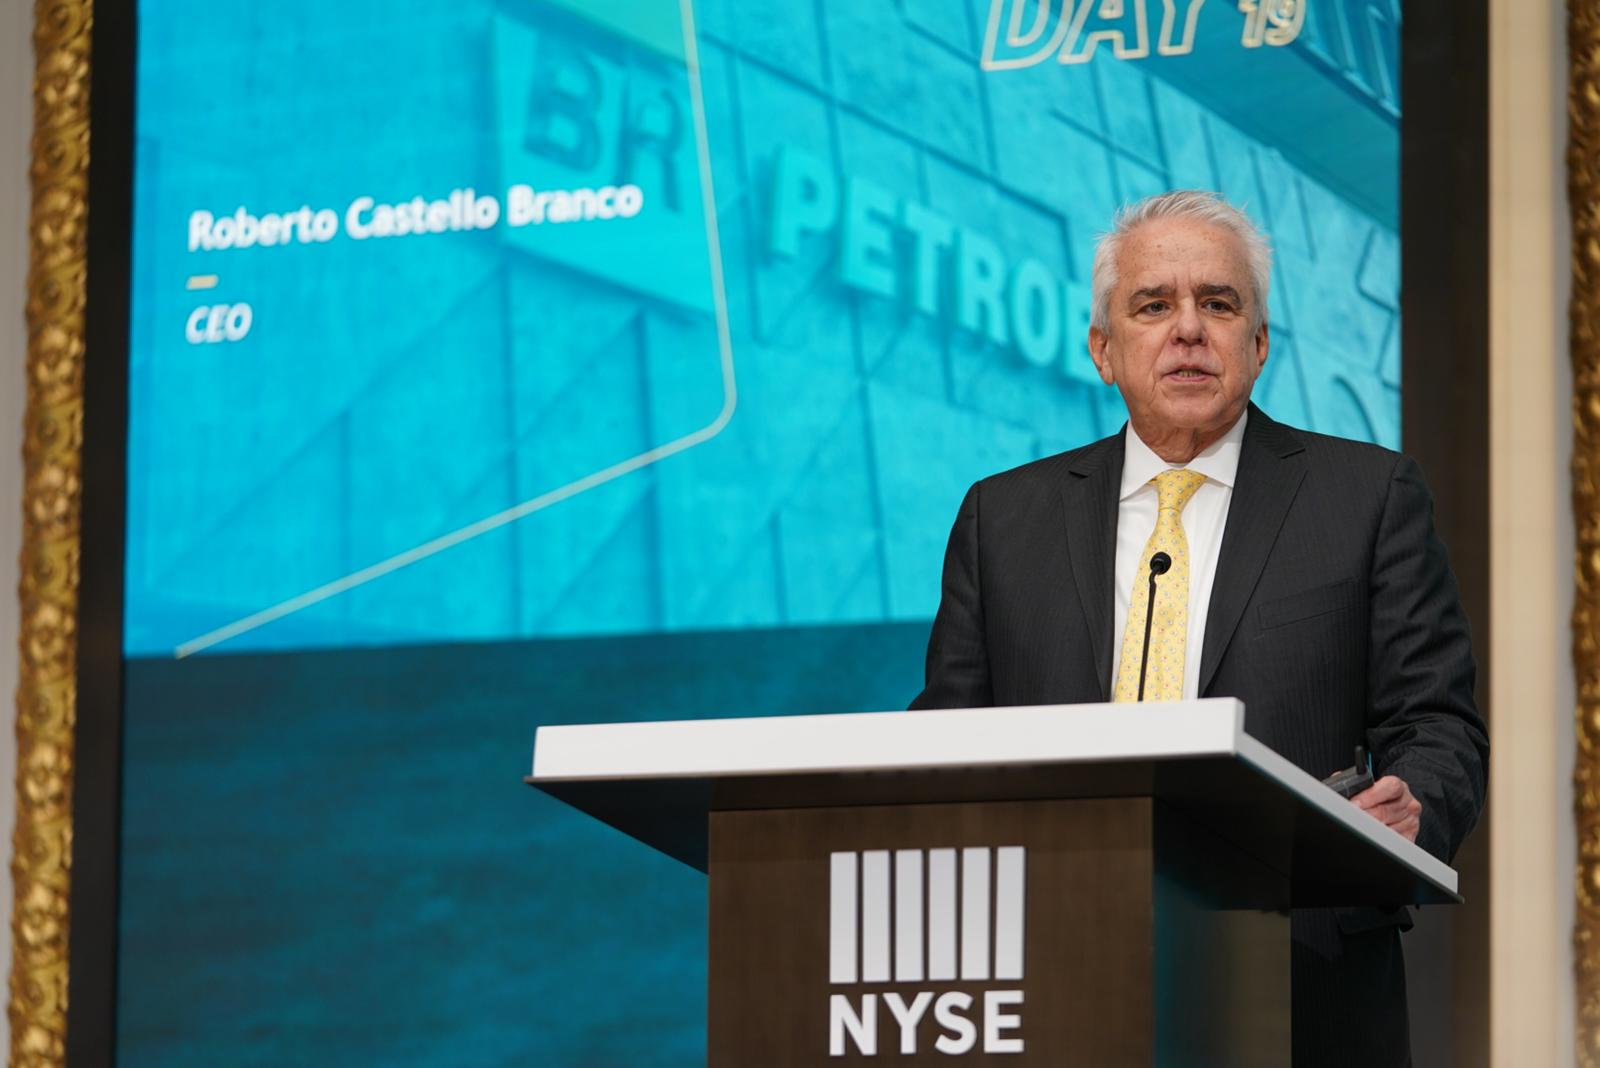 Petrobras supports new auction regime